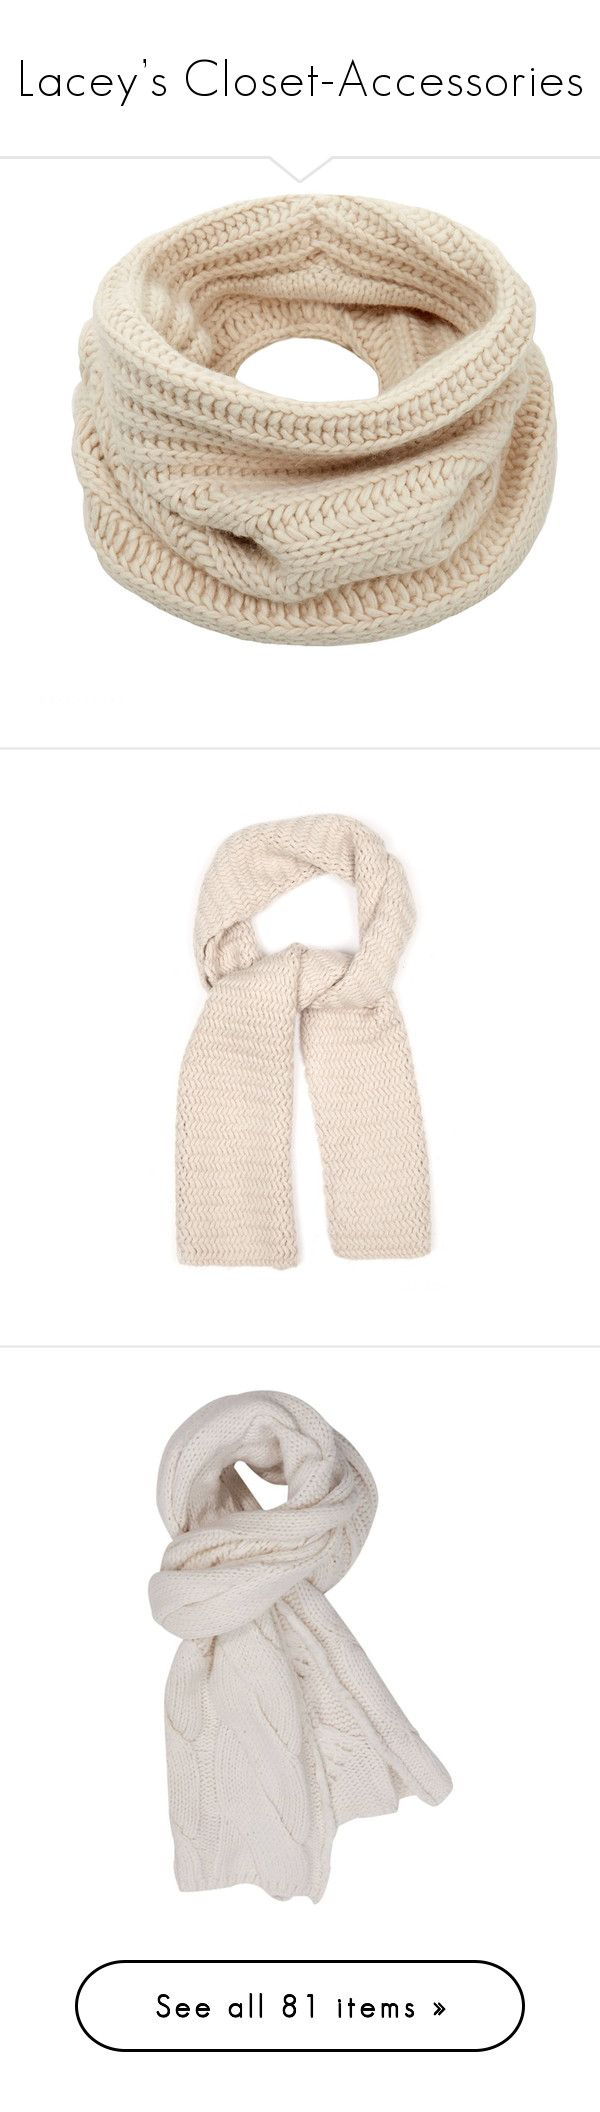 """""""Lacey's Closet-Accessories"""" by markskitten ❤ liked on Polyvore featuring accessories, scarves, multicolour, colorful scarves, multi colored scarves, colorful shawls, helmut lang, beige, chevron scarves and print scarves"""